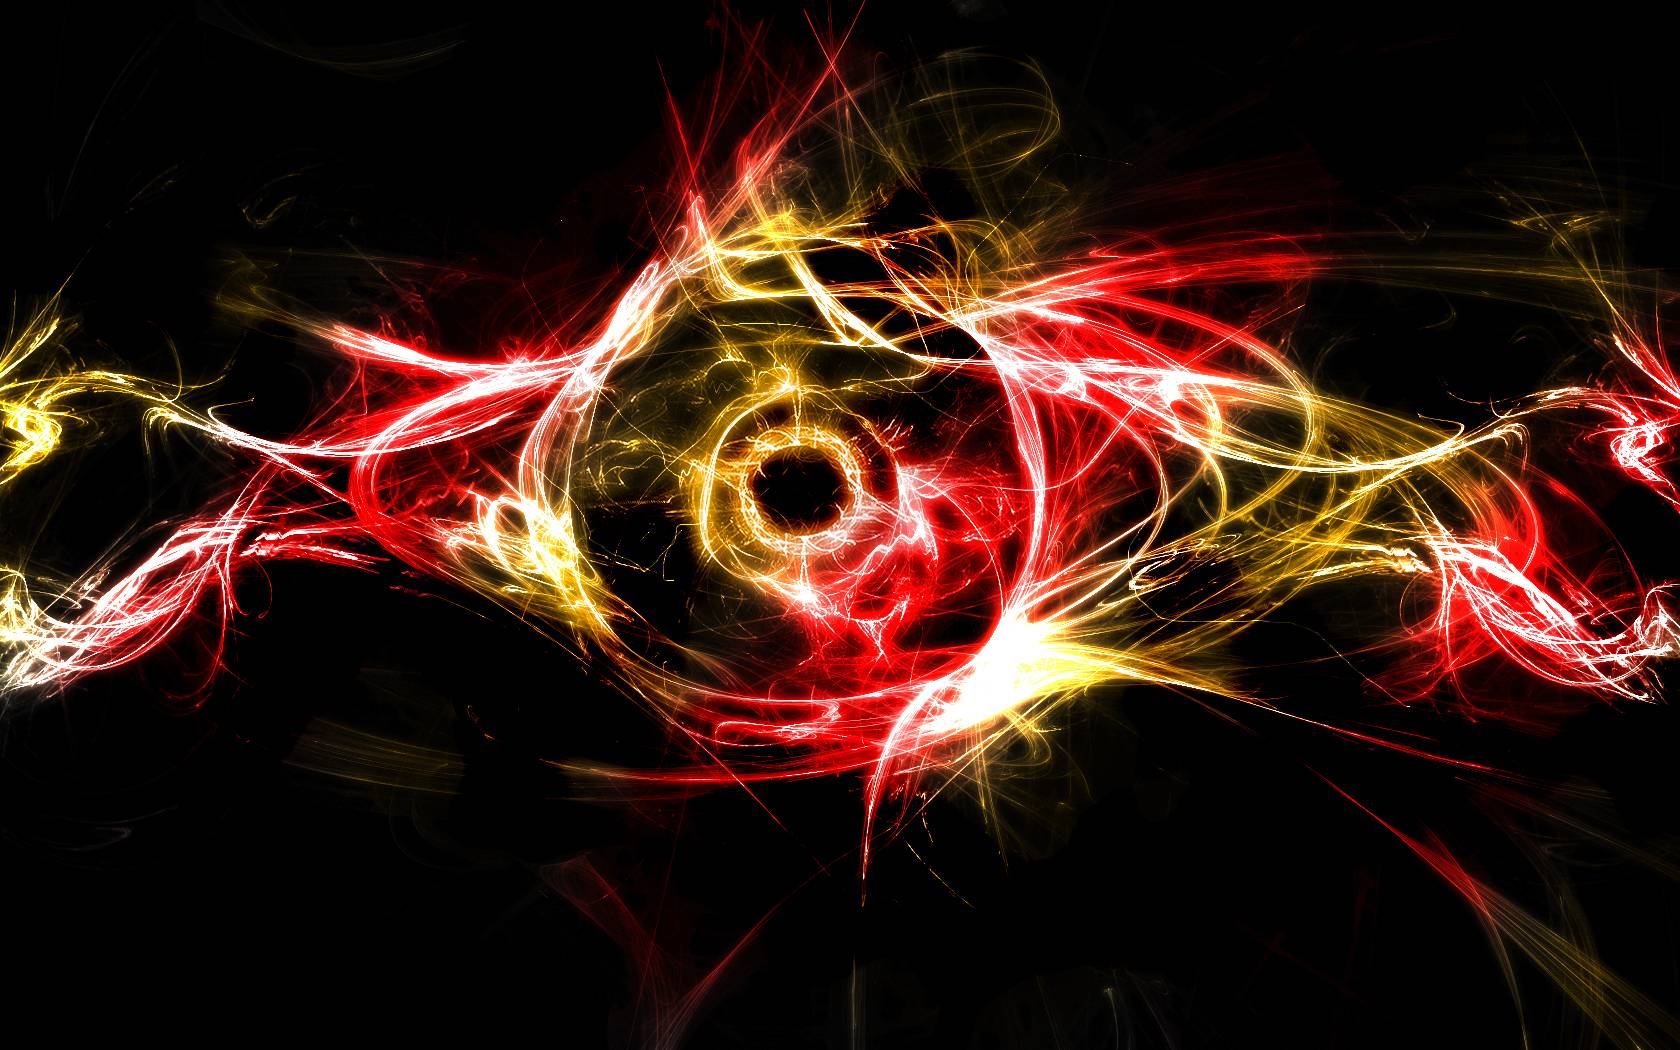 Cool Abstract Desktop Wallpapers Top Free Cool Abstract Desktop Backgrounds Wallpaperaccess